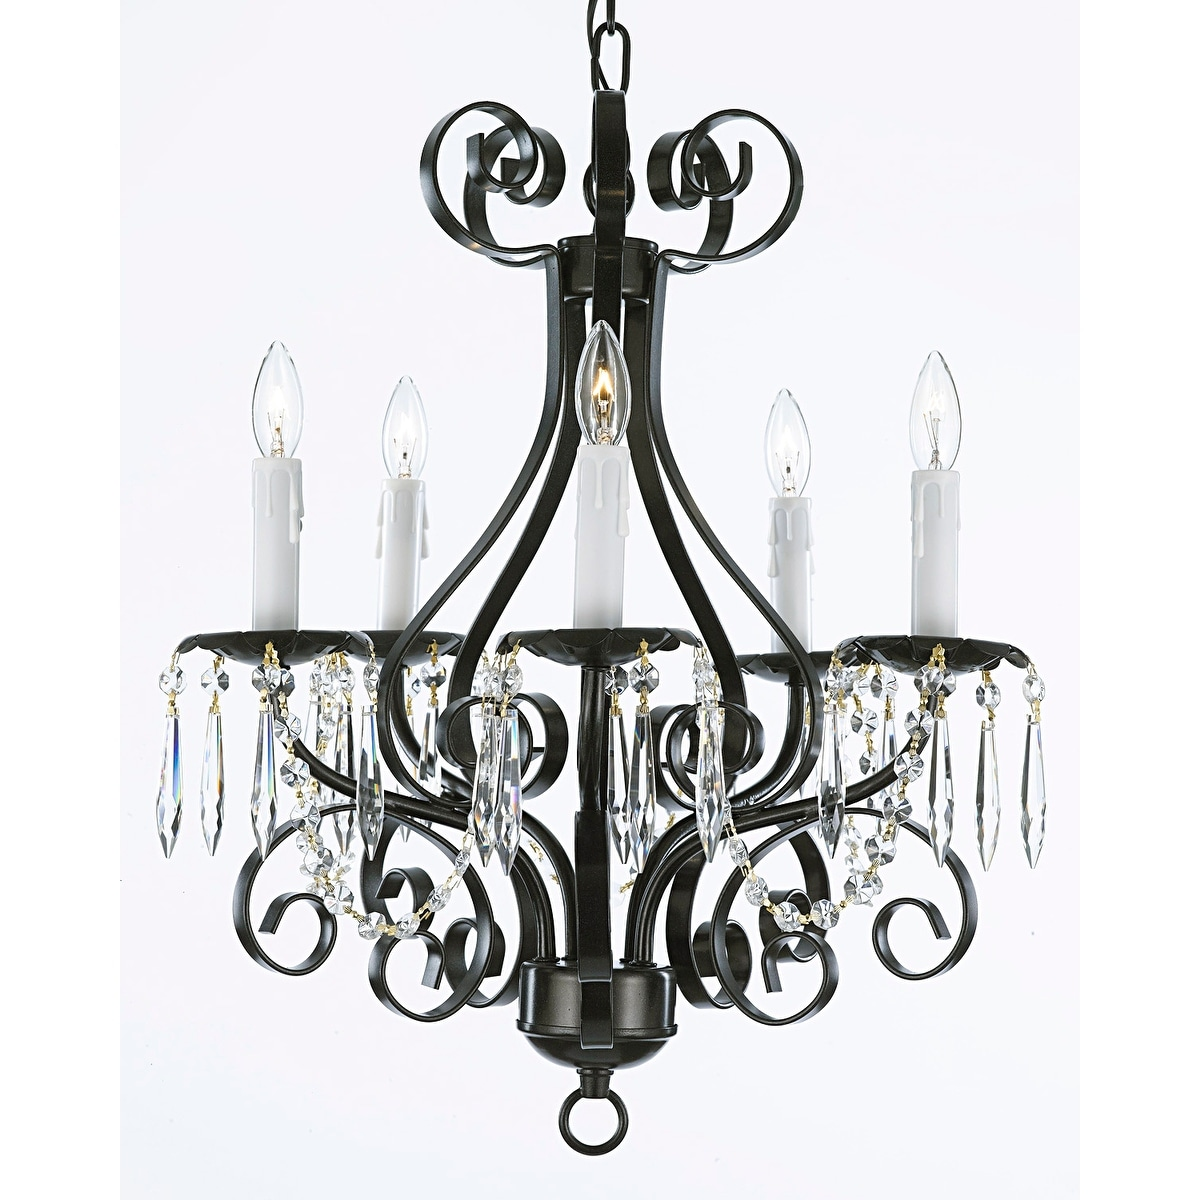 Wrought Iron And Crystal 5 Light Black Chandelier Pendant On Sale Overstock 12058803